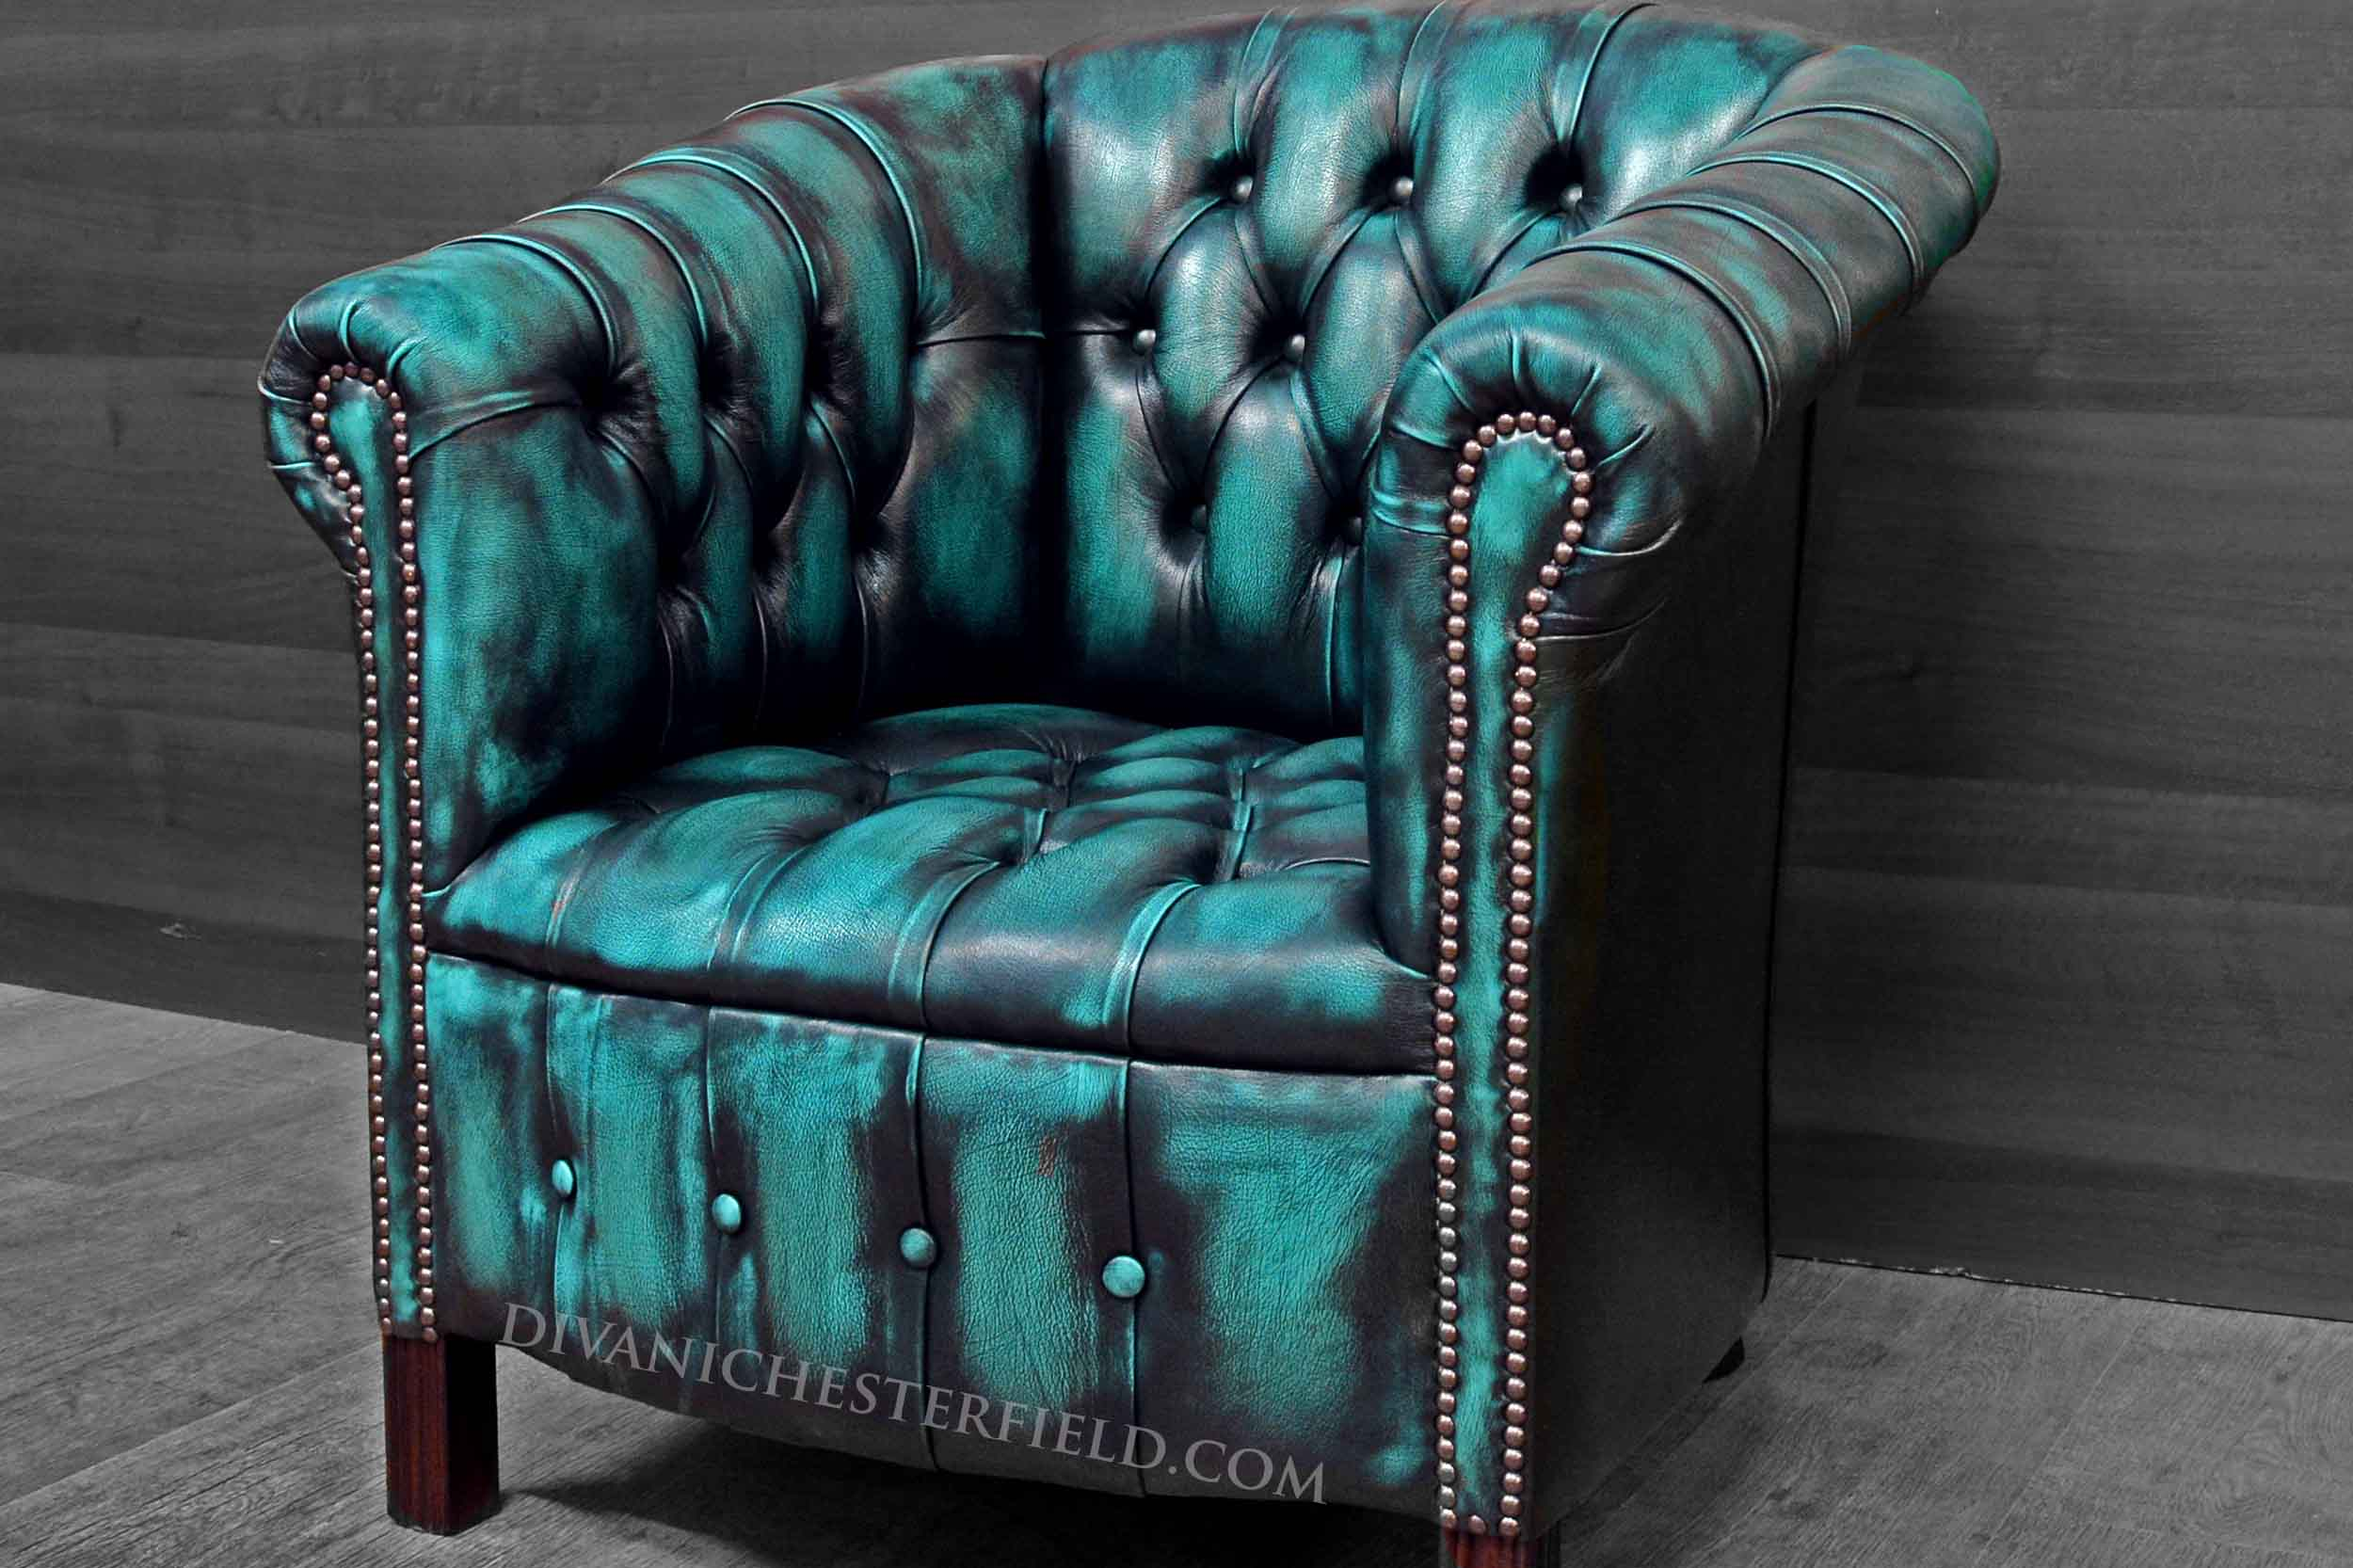 Modern Chesterfield Chair New Leathers Yellow Turquoise